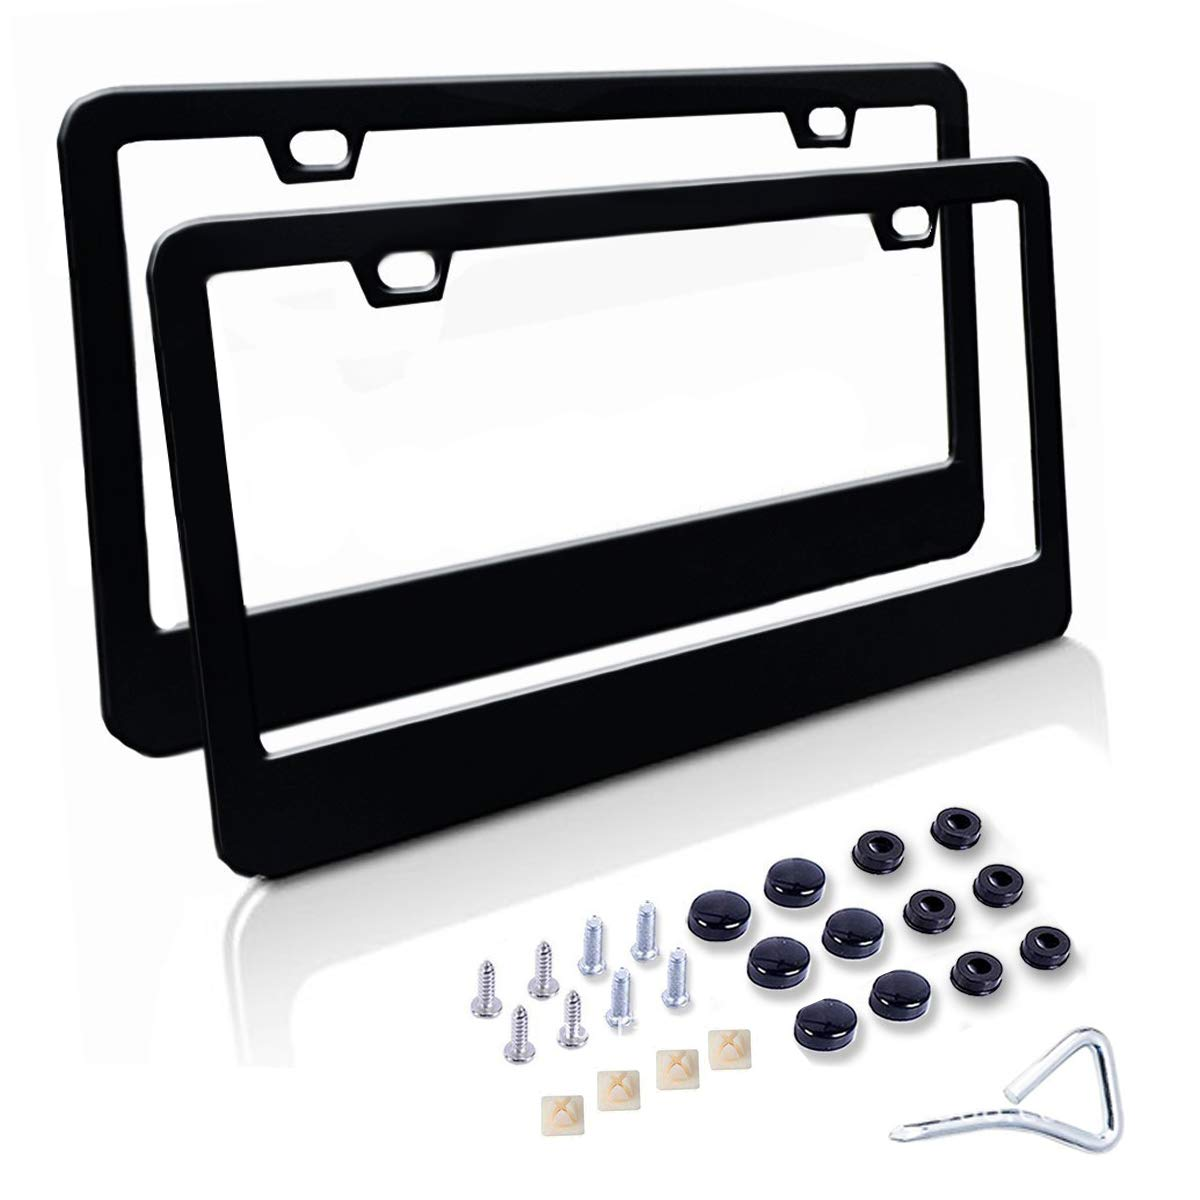 WildAuto License Plate Frame, 2 Pack Stainless Steel Car Licence Plate Covers with Screw Caps(Black) CA-WA-Licenses Frames-Black